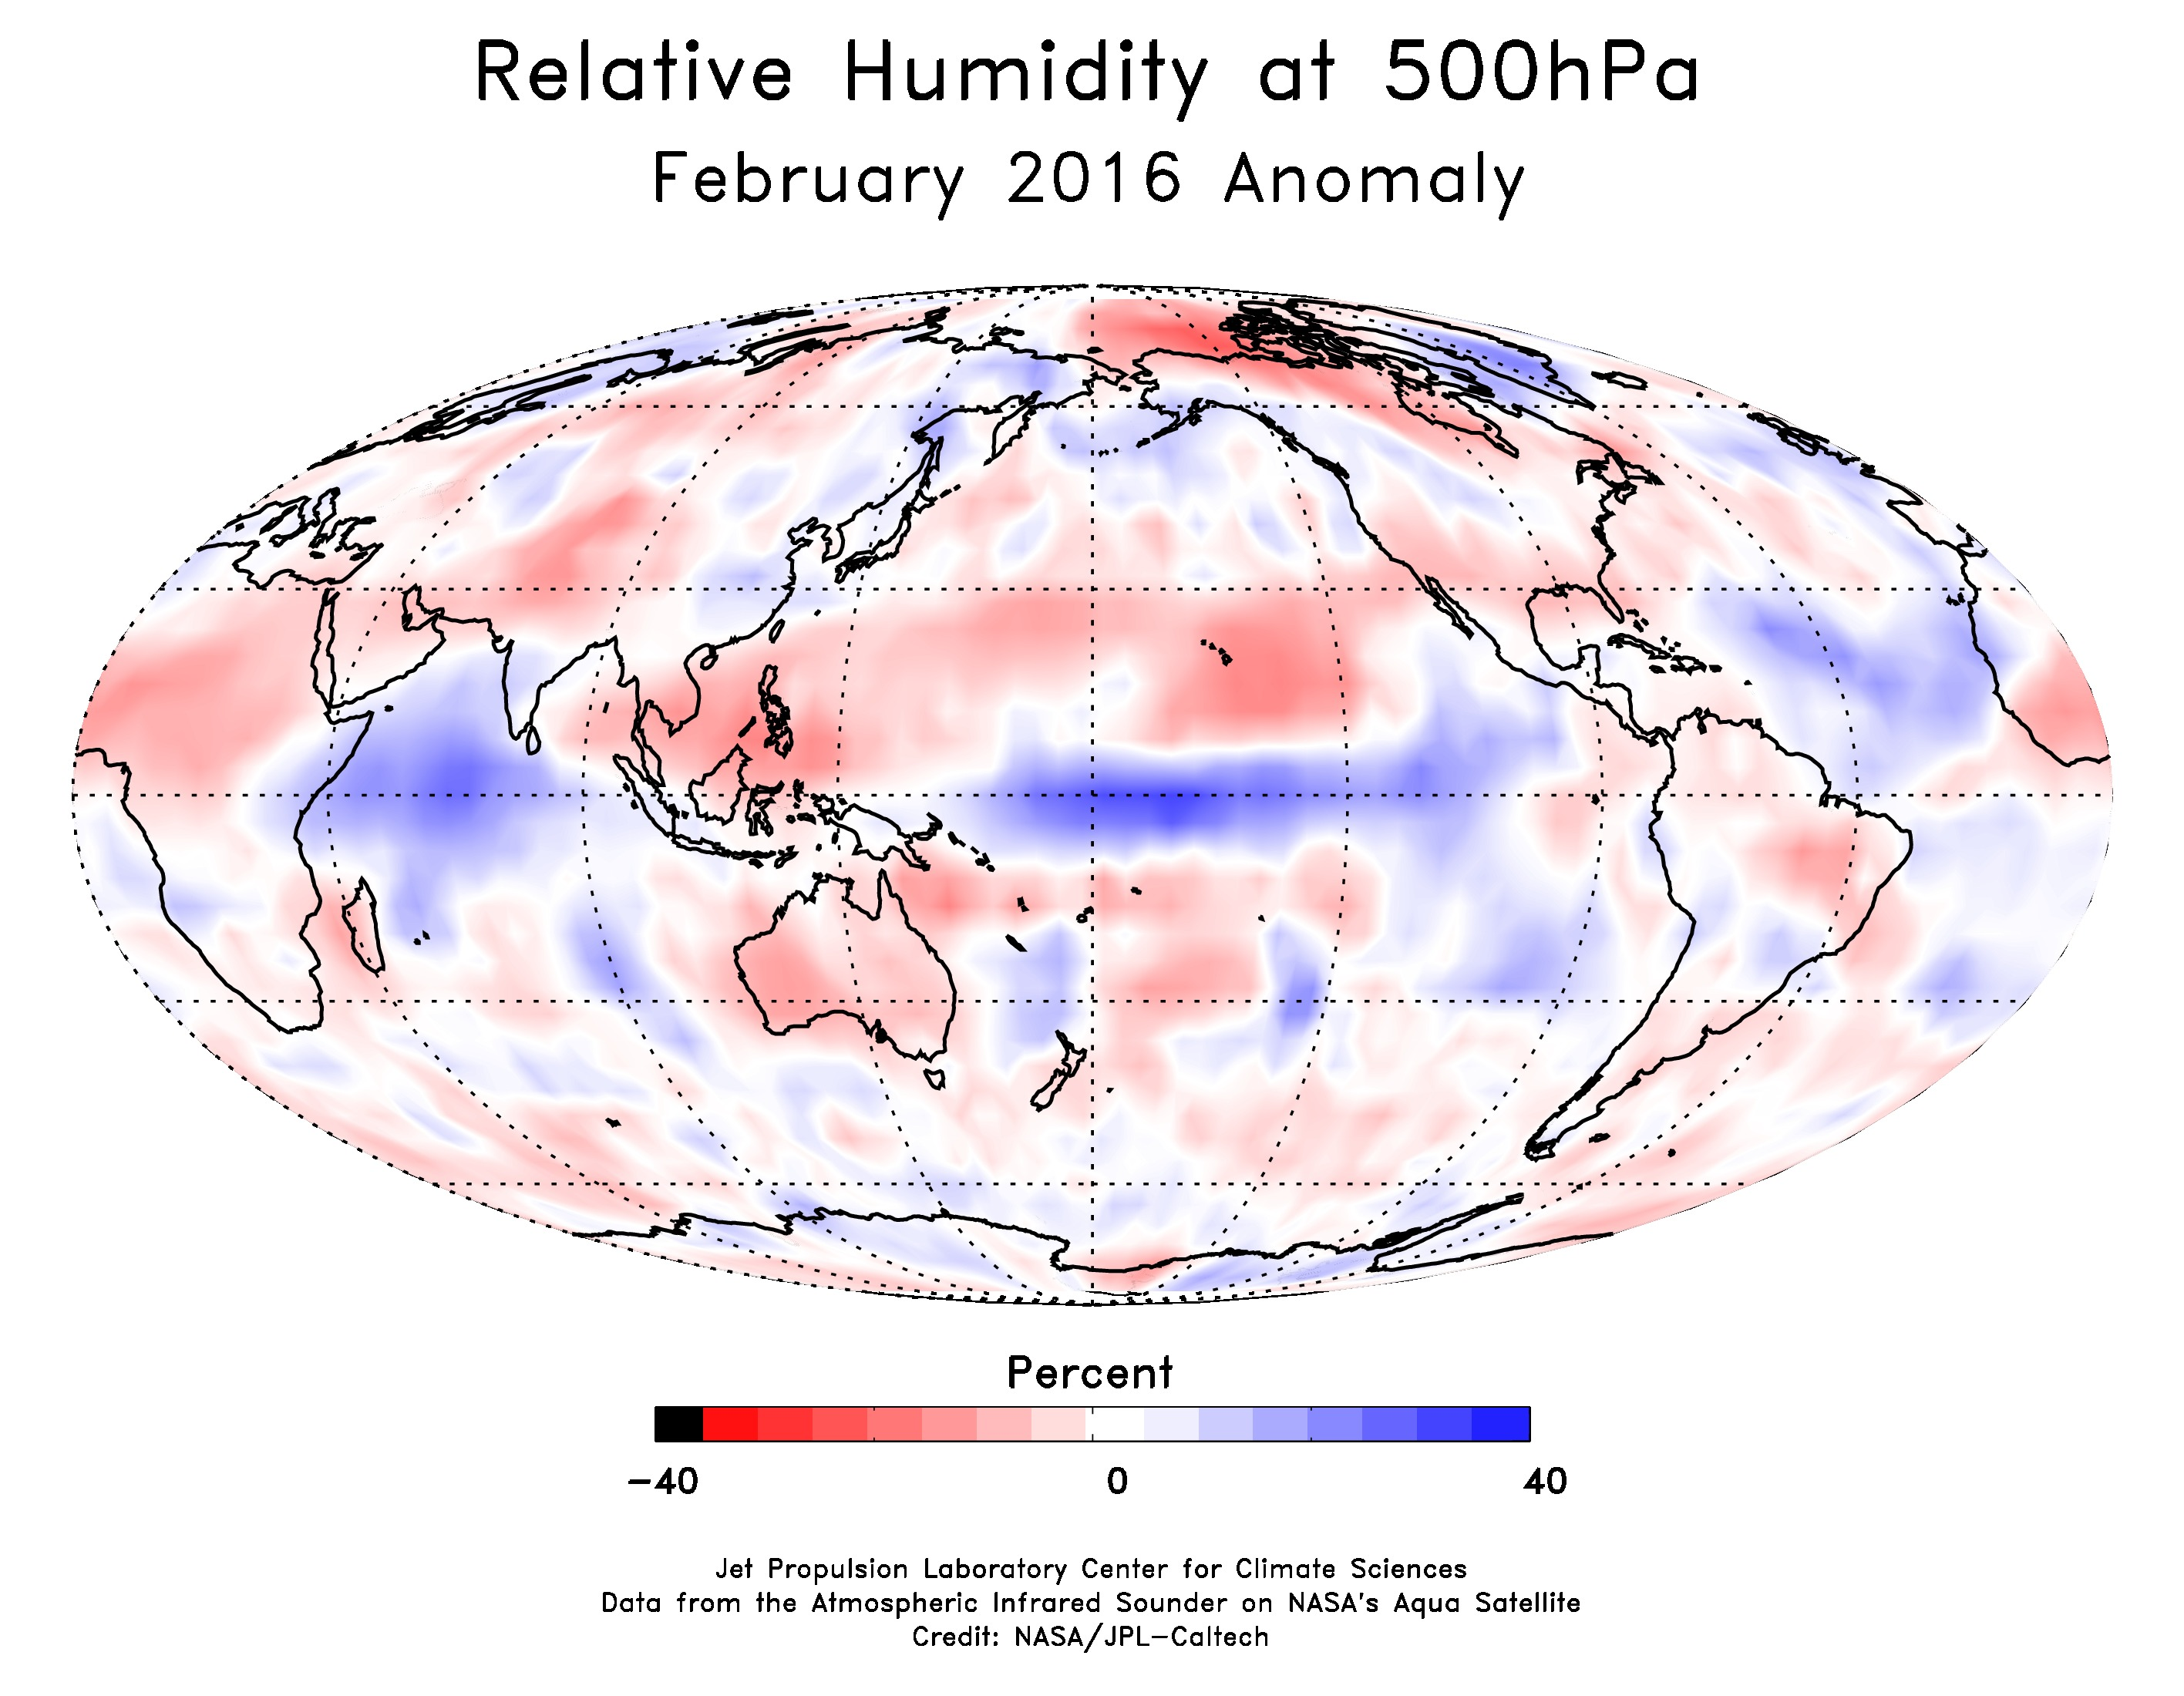 relative humidty at 500hpa February 2016